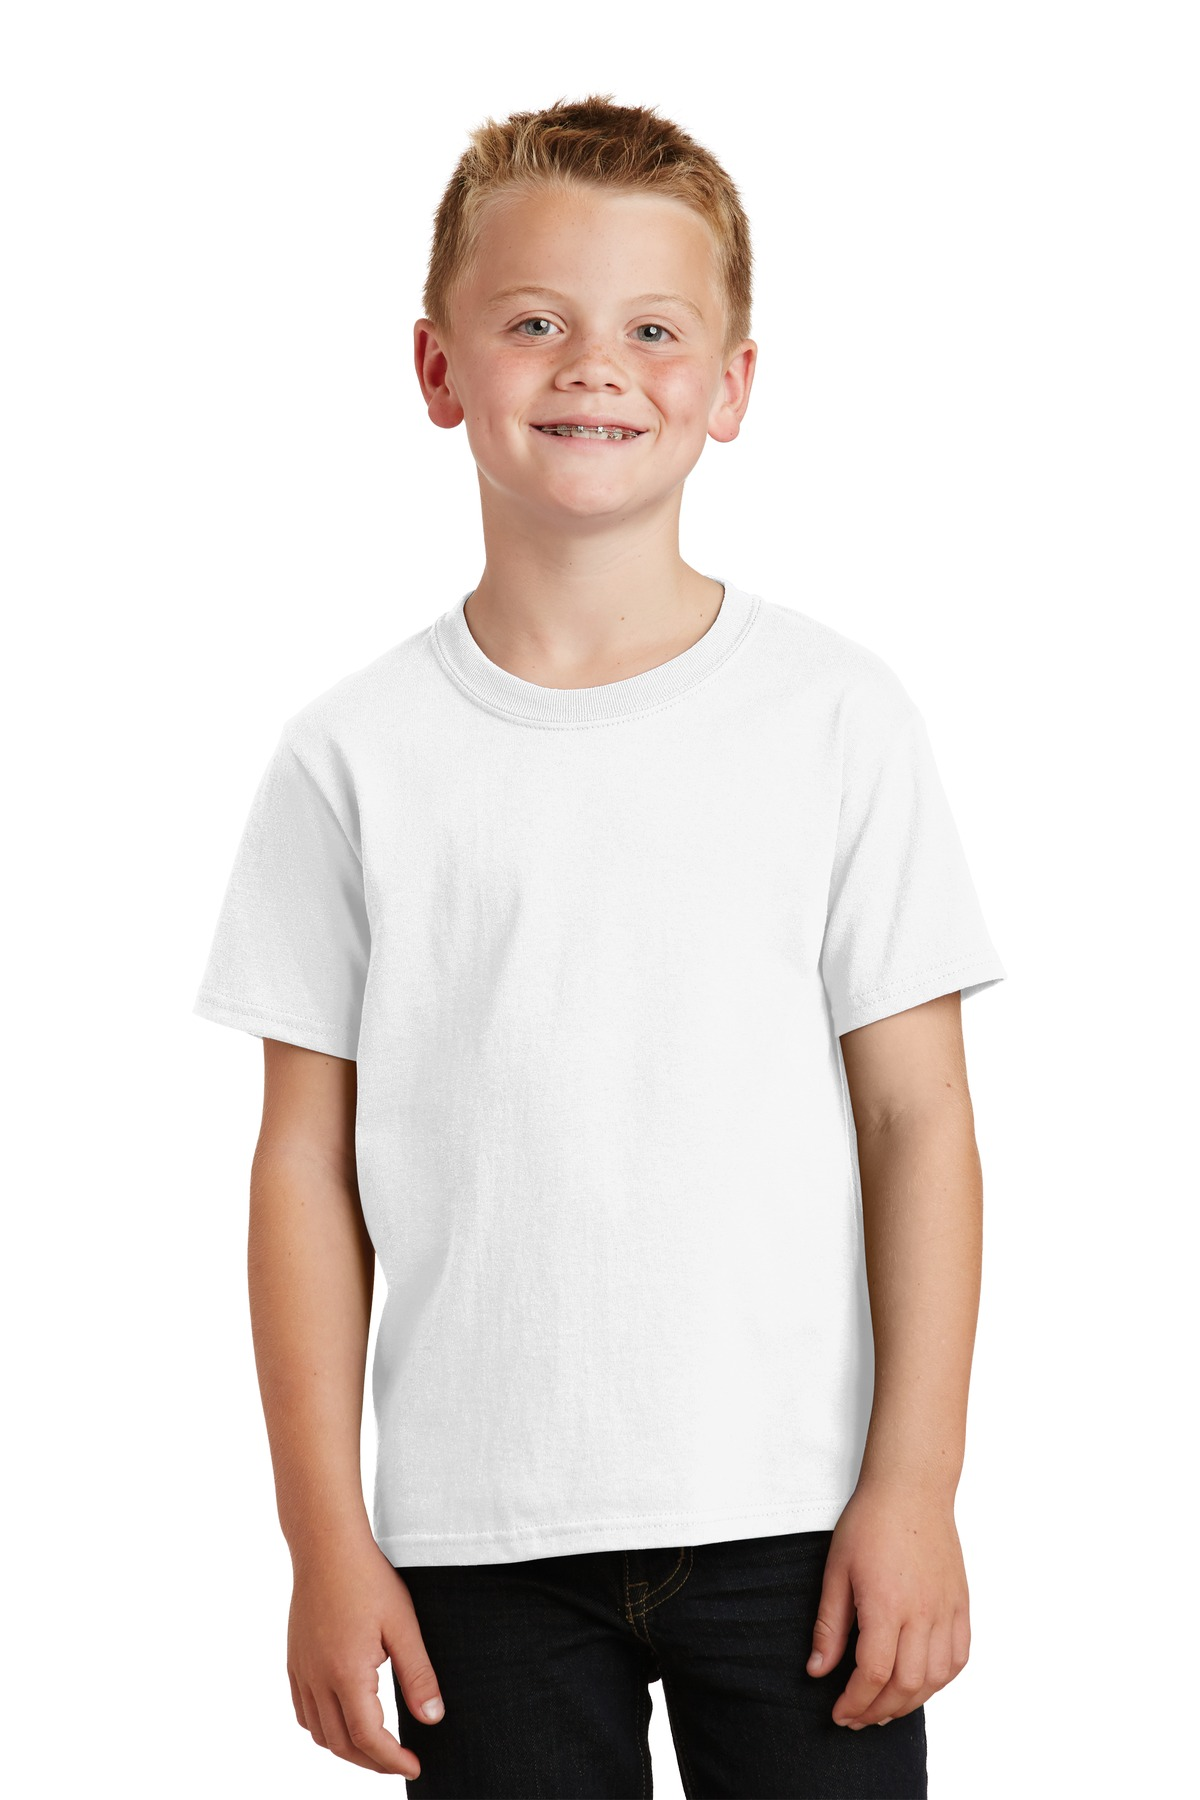 Port & Company ®  - Youth Core Cotton Tee. PC54Y - White